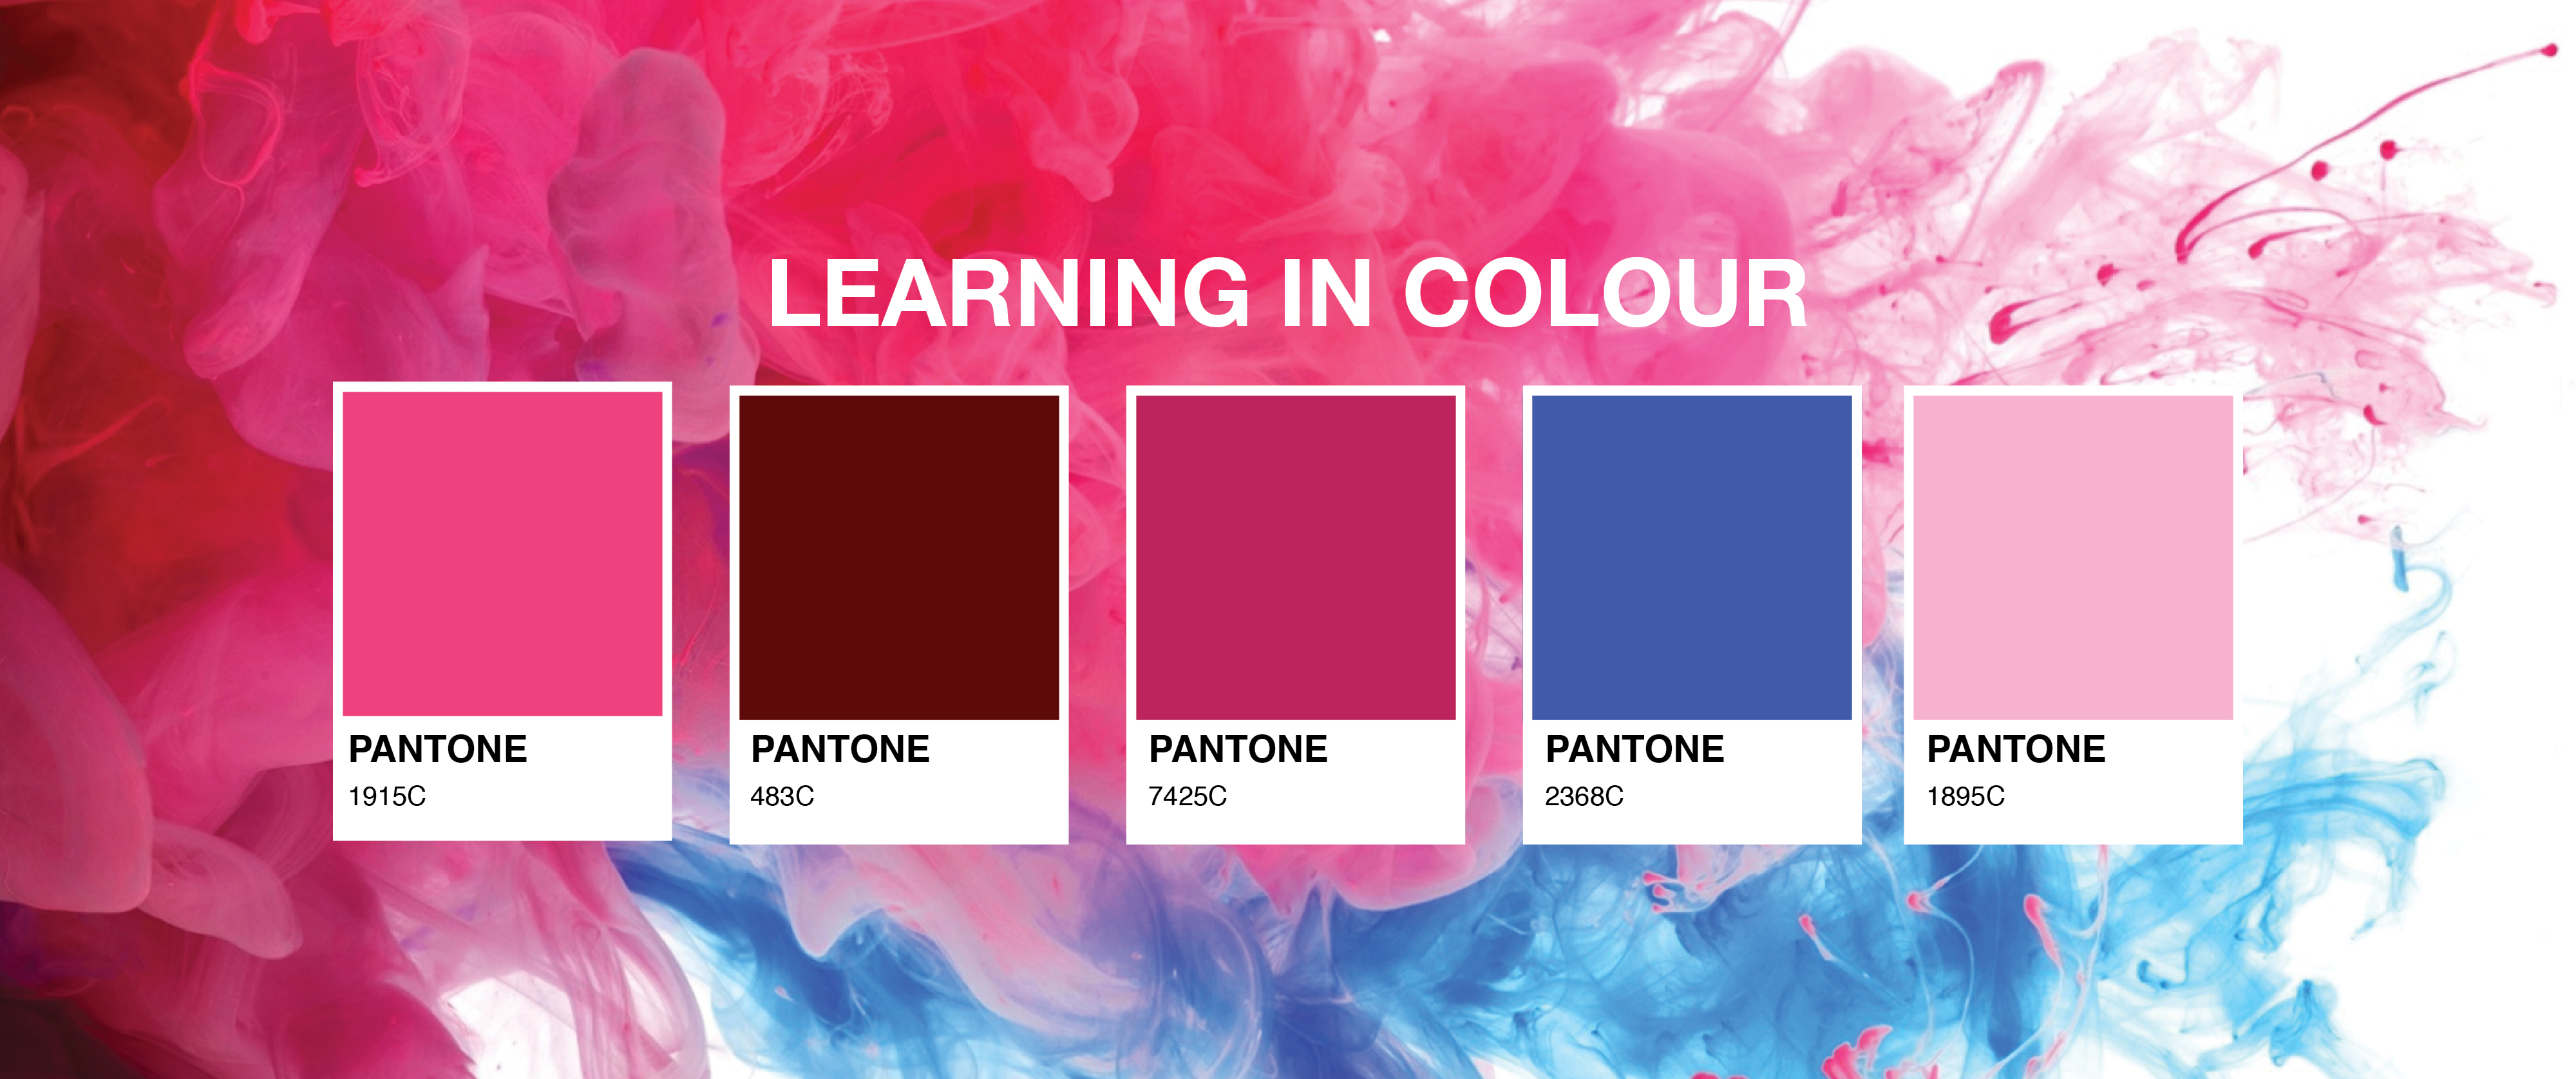 The psychology of colour and its role in e-learning